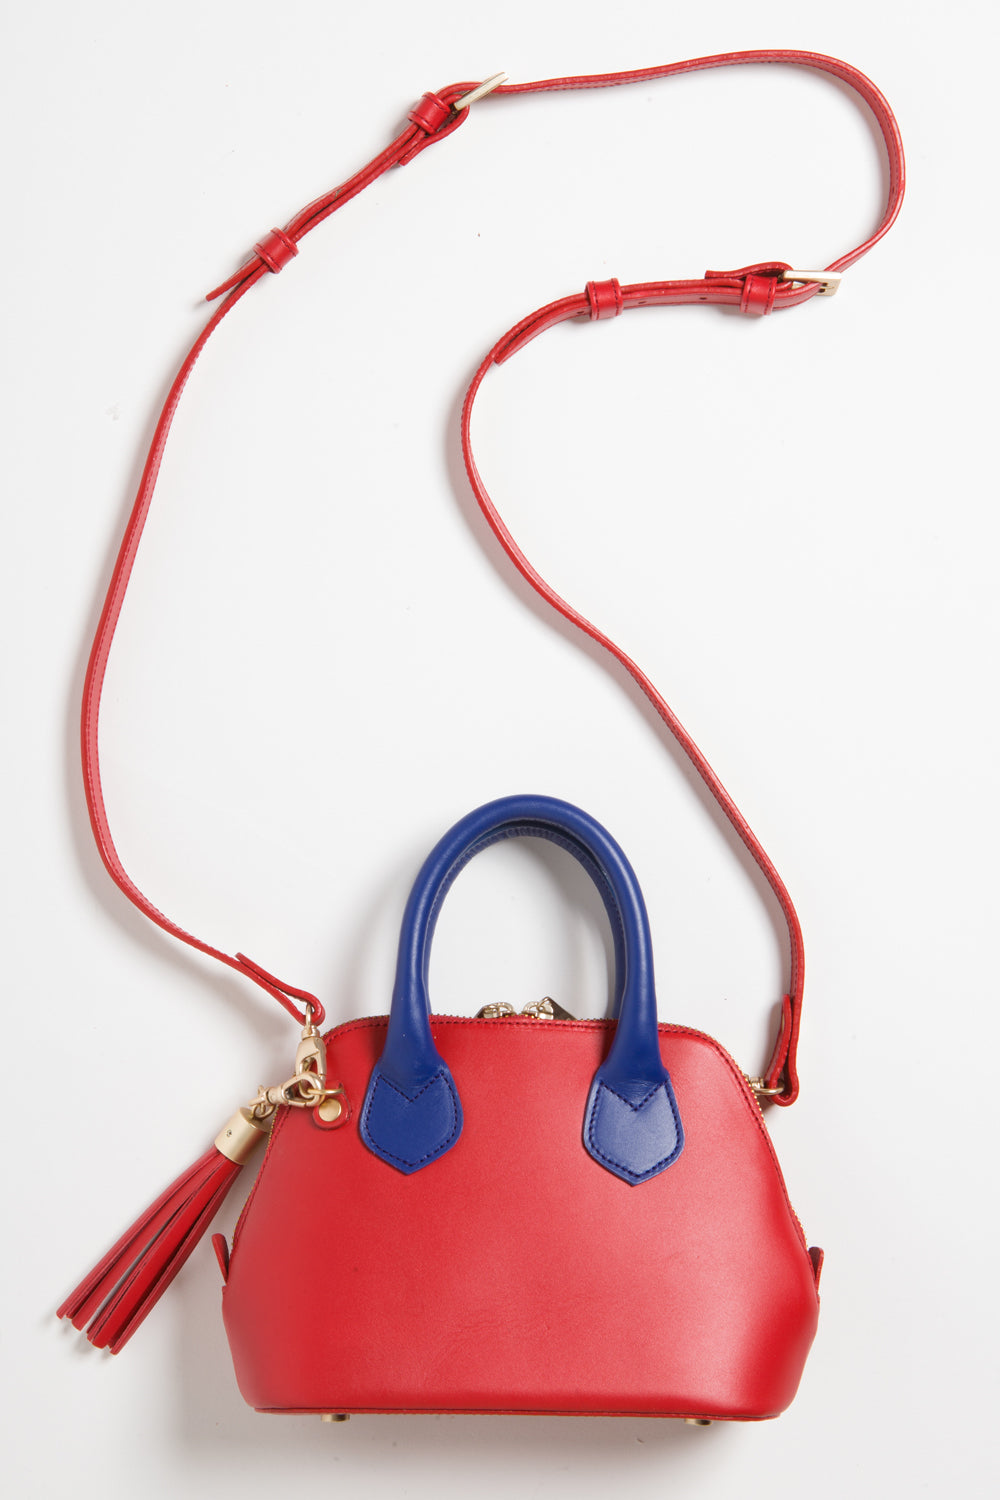 Red & Cobalt Blue Smooth Leather 'Watson Micro' Tote | Mel Boteri | Long Adjustable Strap View